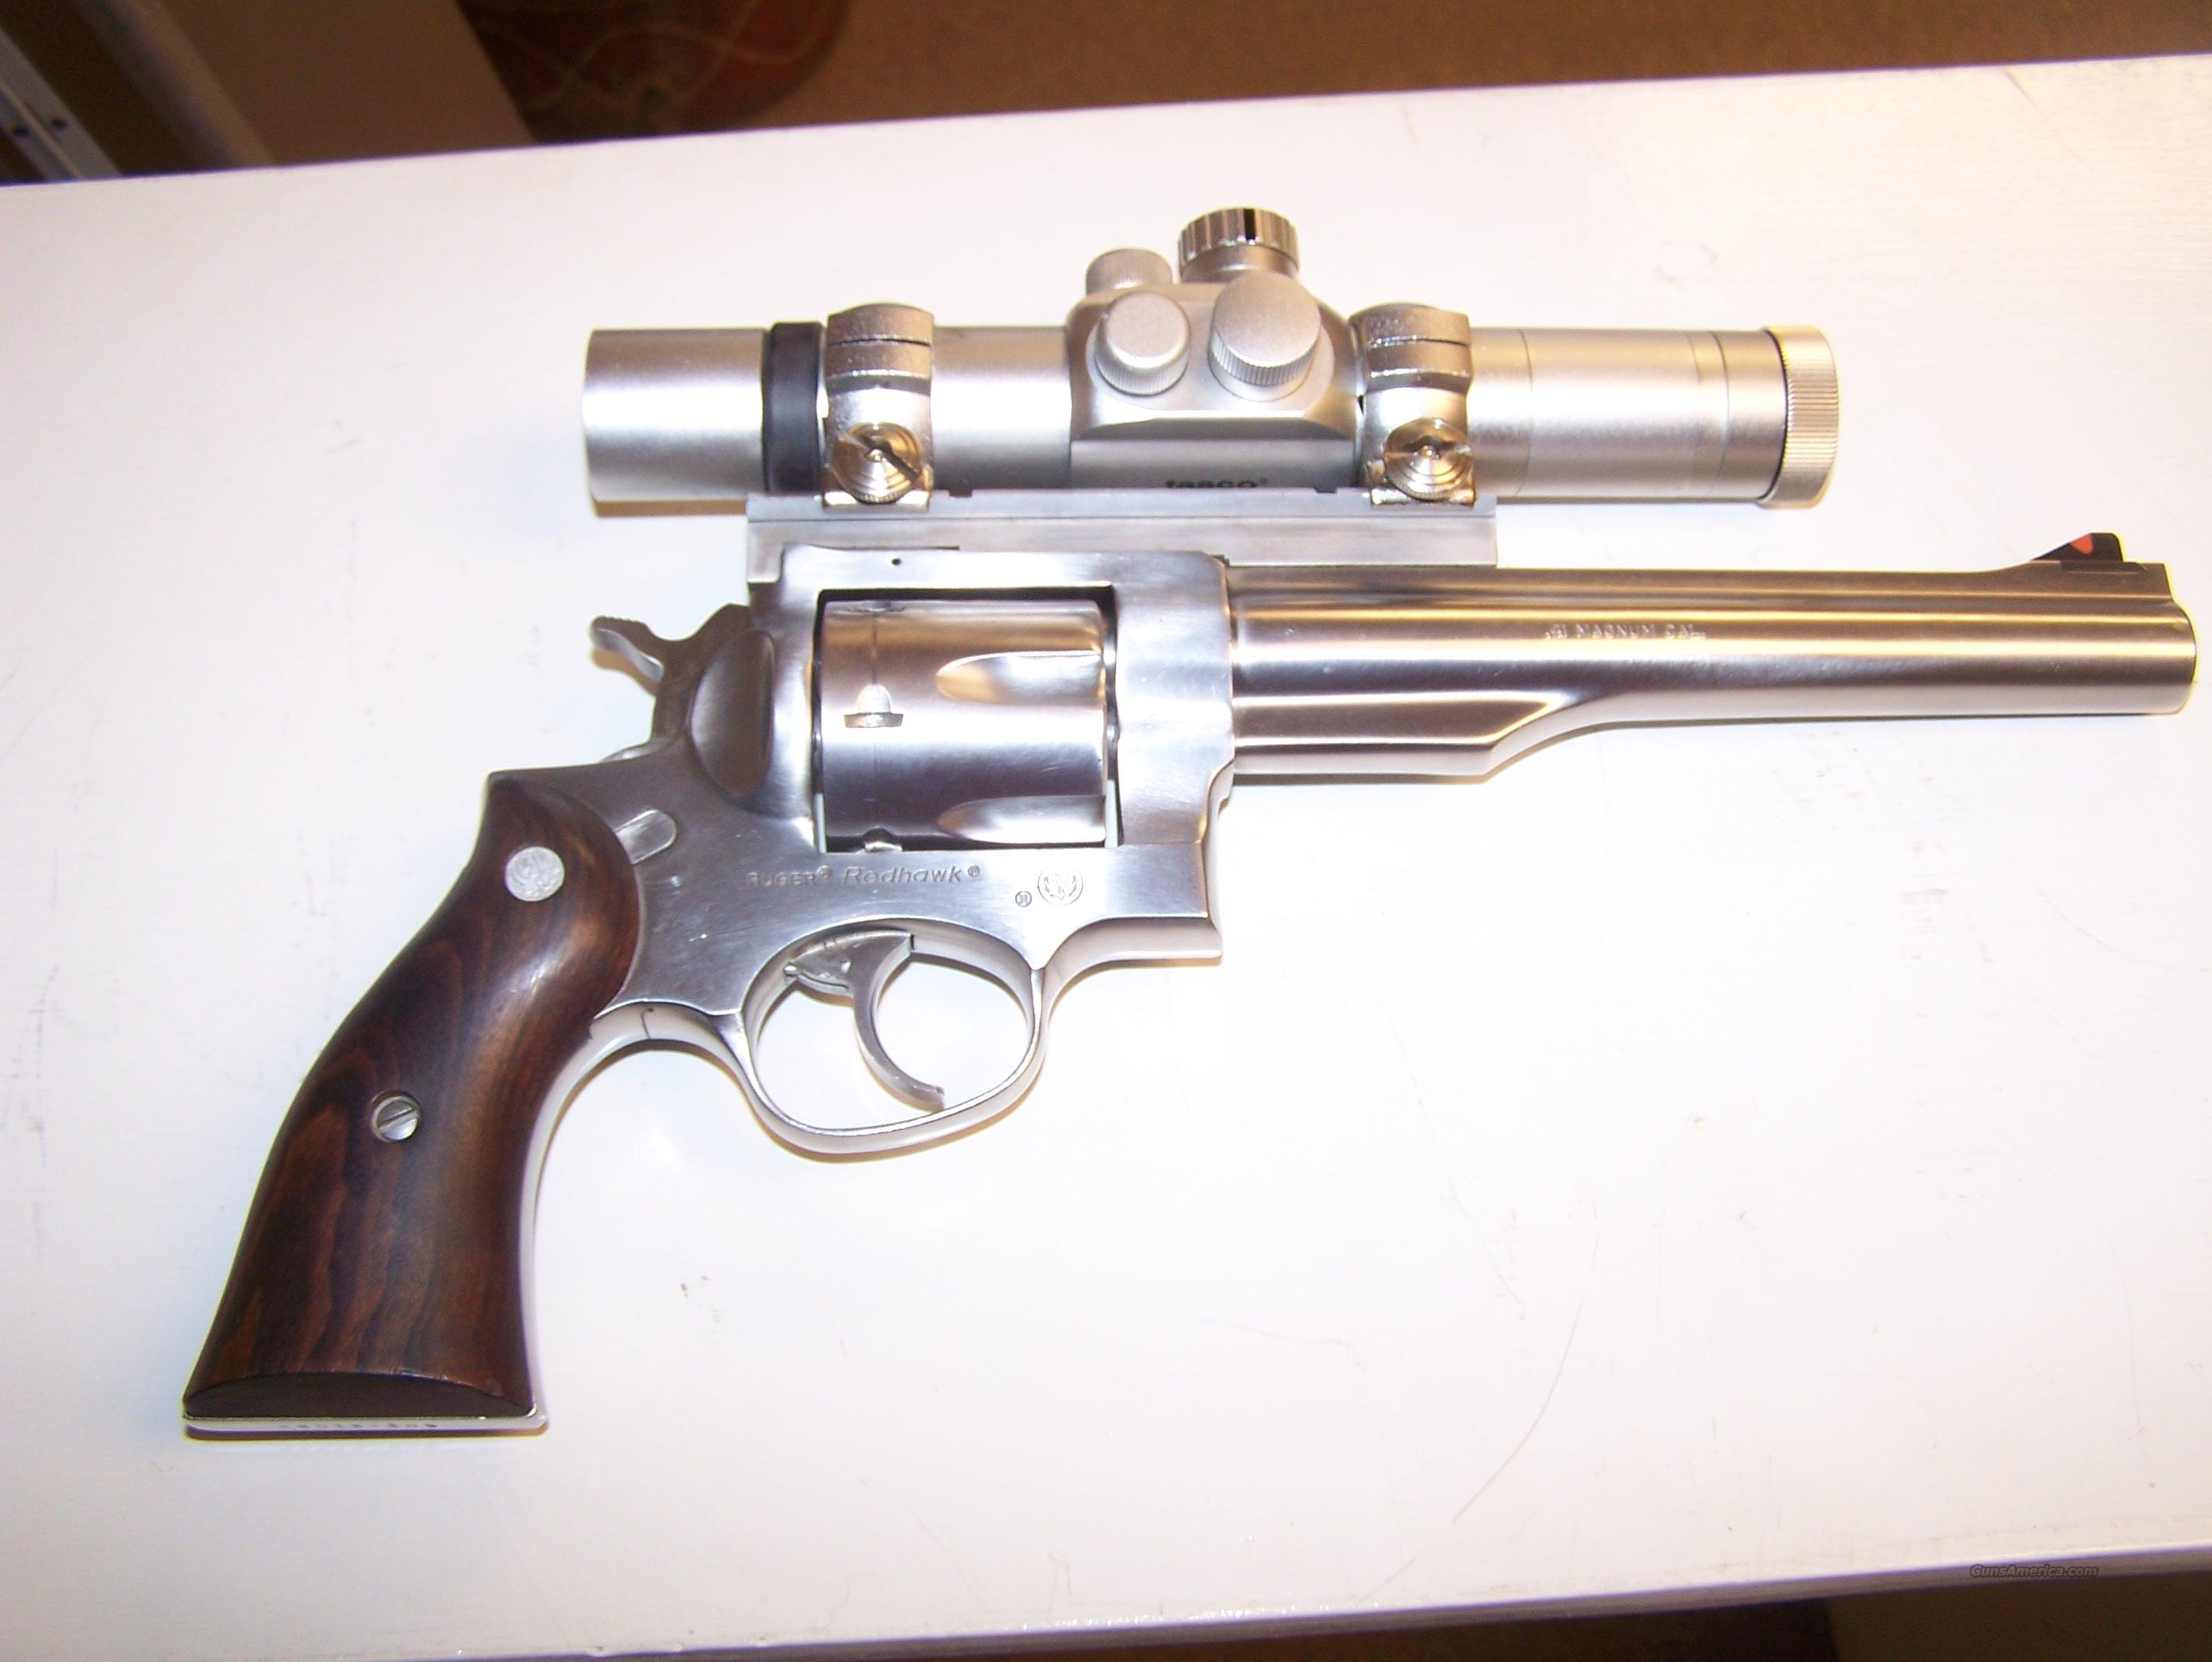 Ruger Redhawk .41 Magnum Stainless Steel with scope  Guns > Pistols > Ruger Double Action Revolver > Redhawk Type